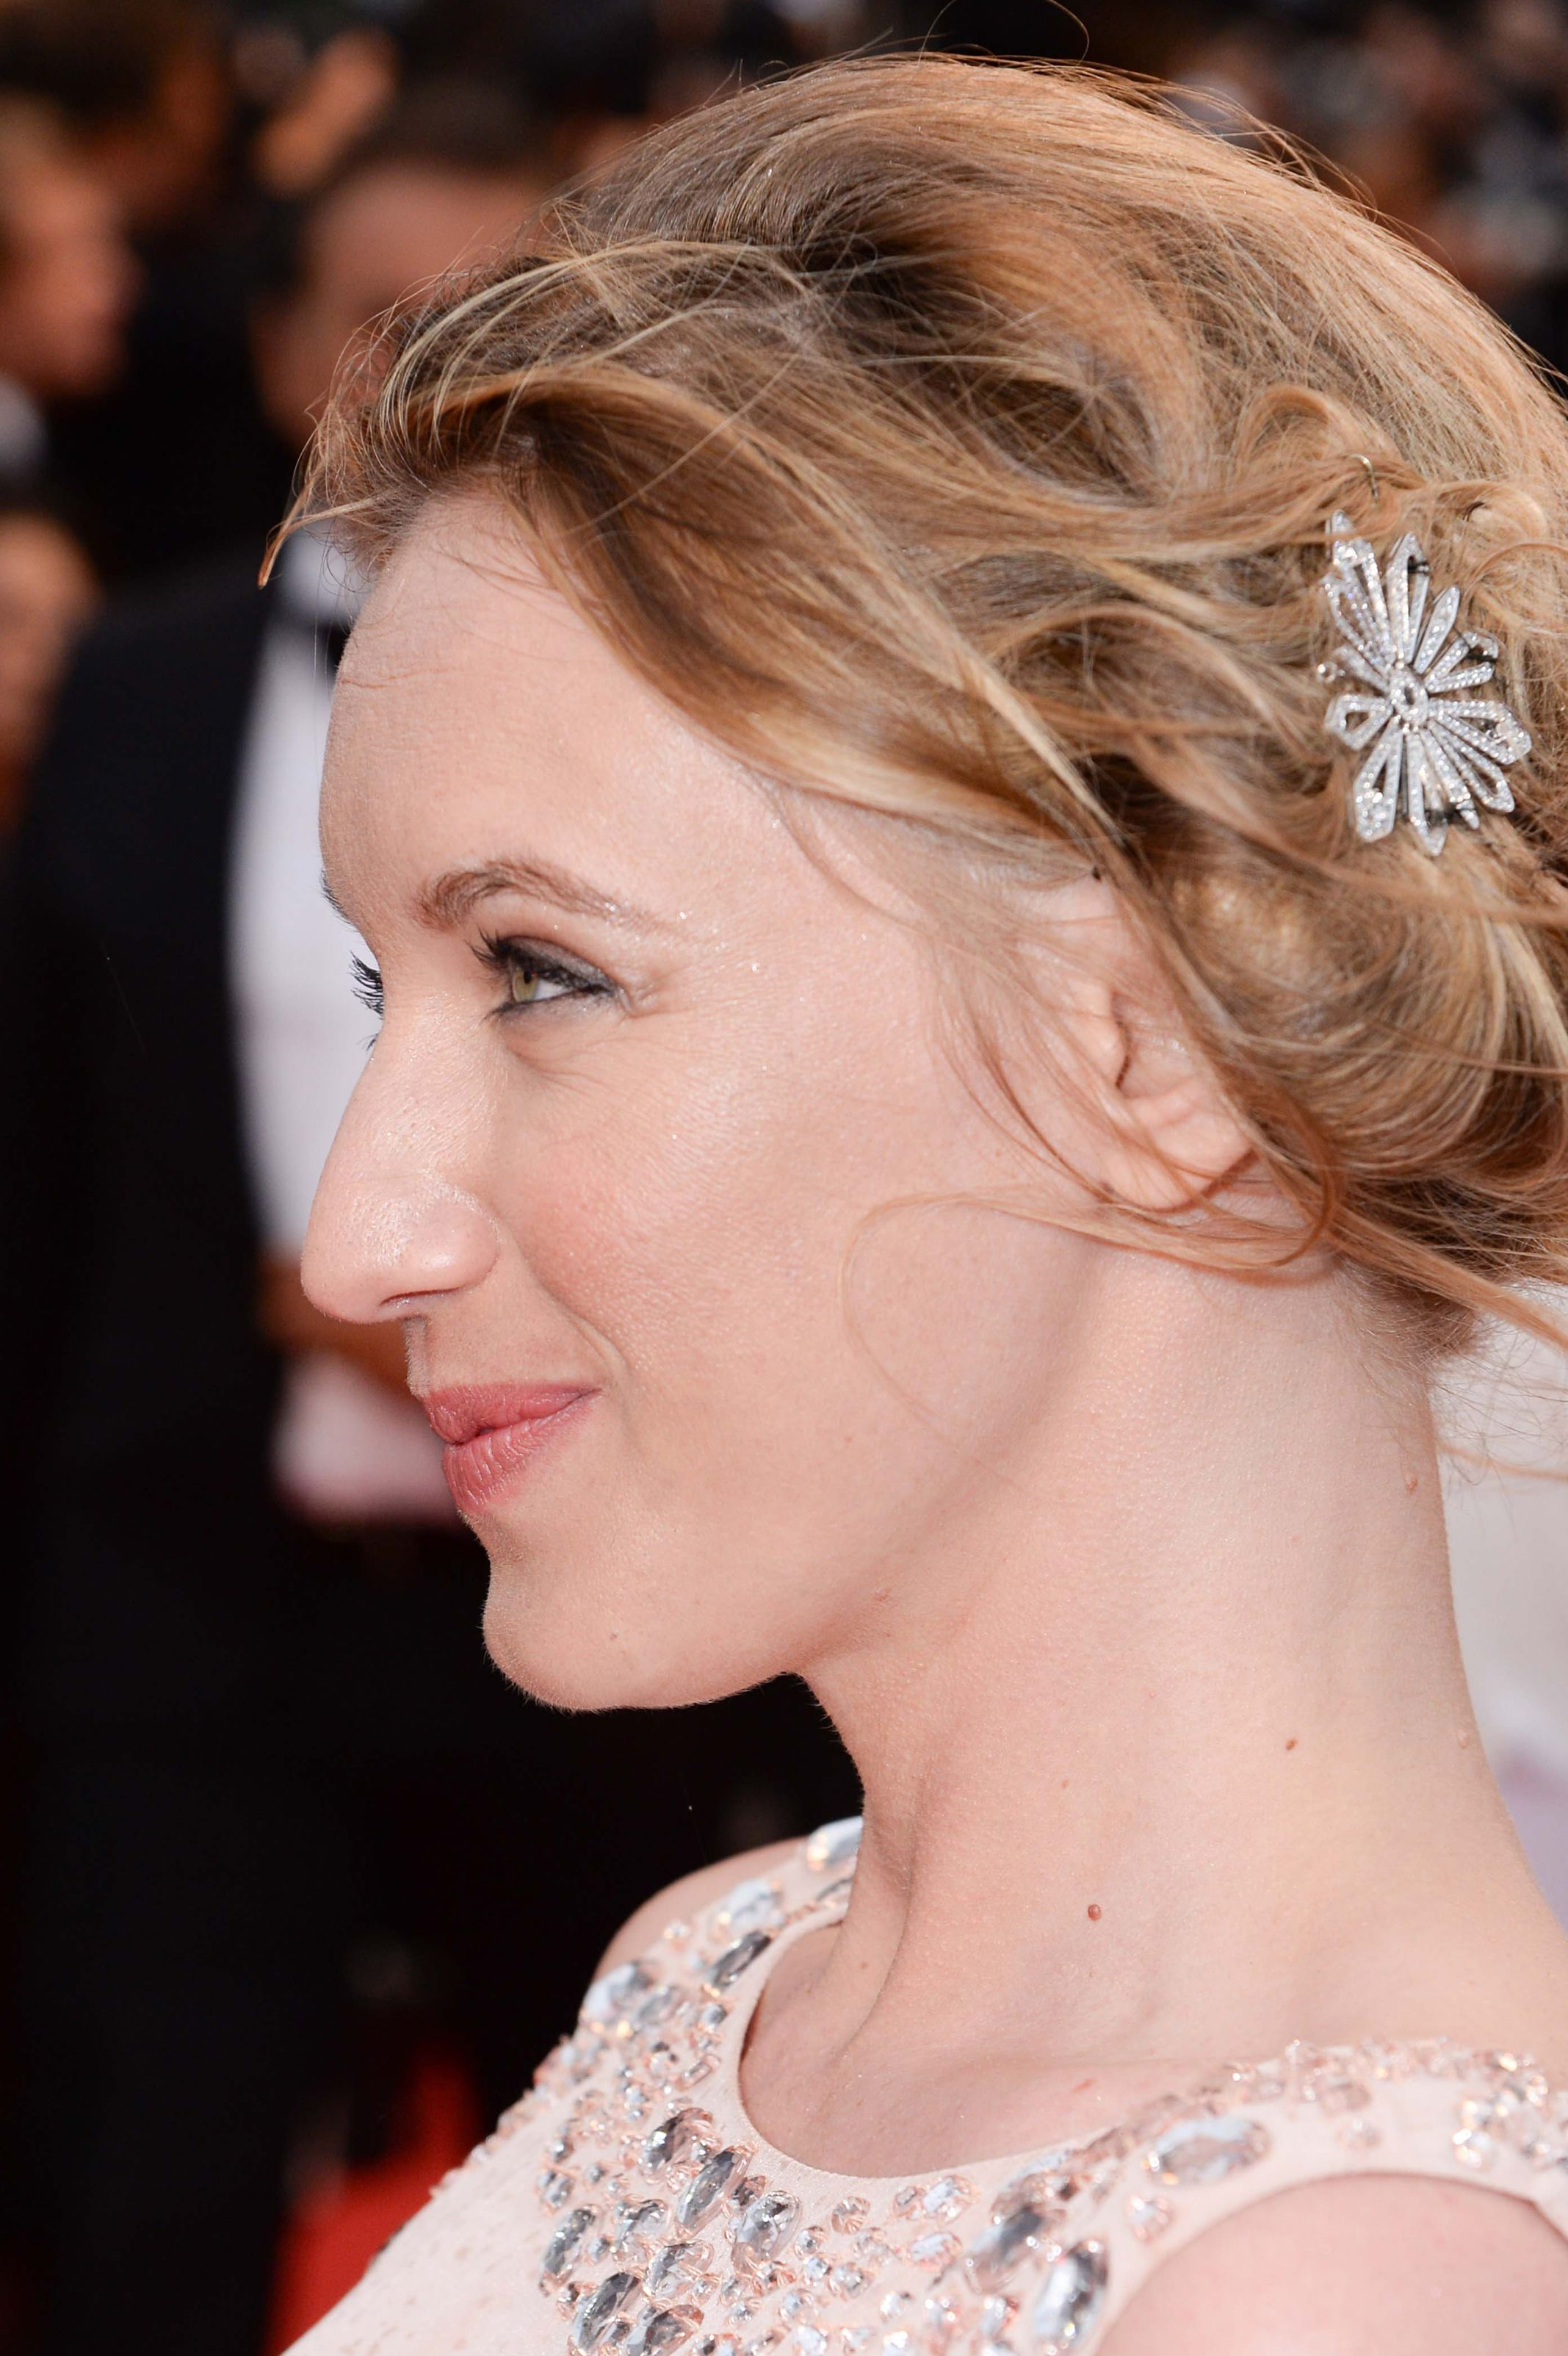 Ludivine Sagnier, Member of the Jury for Un Certain Regard, wears an hair ornament and a bracelet in white gold and diamonds from the Joséphine collection by Chaumet.